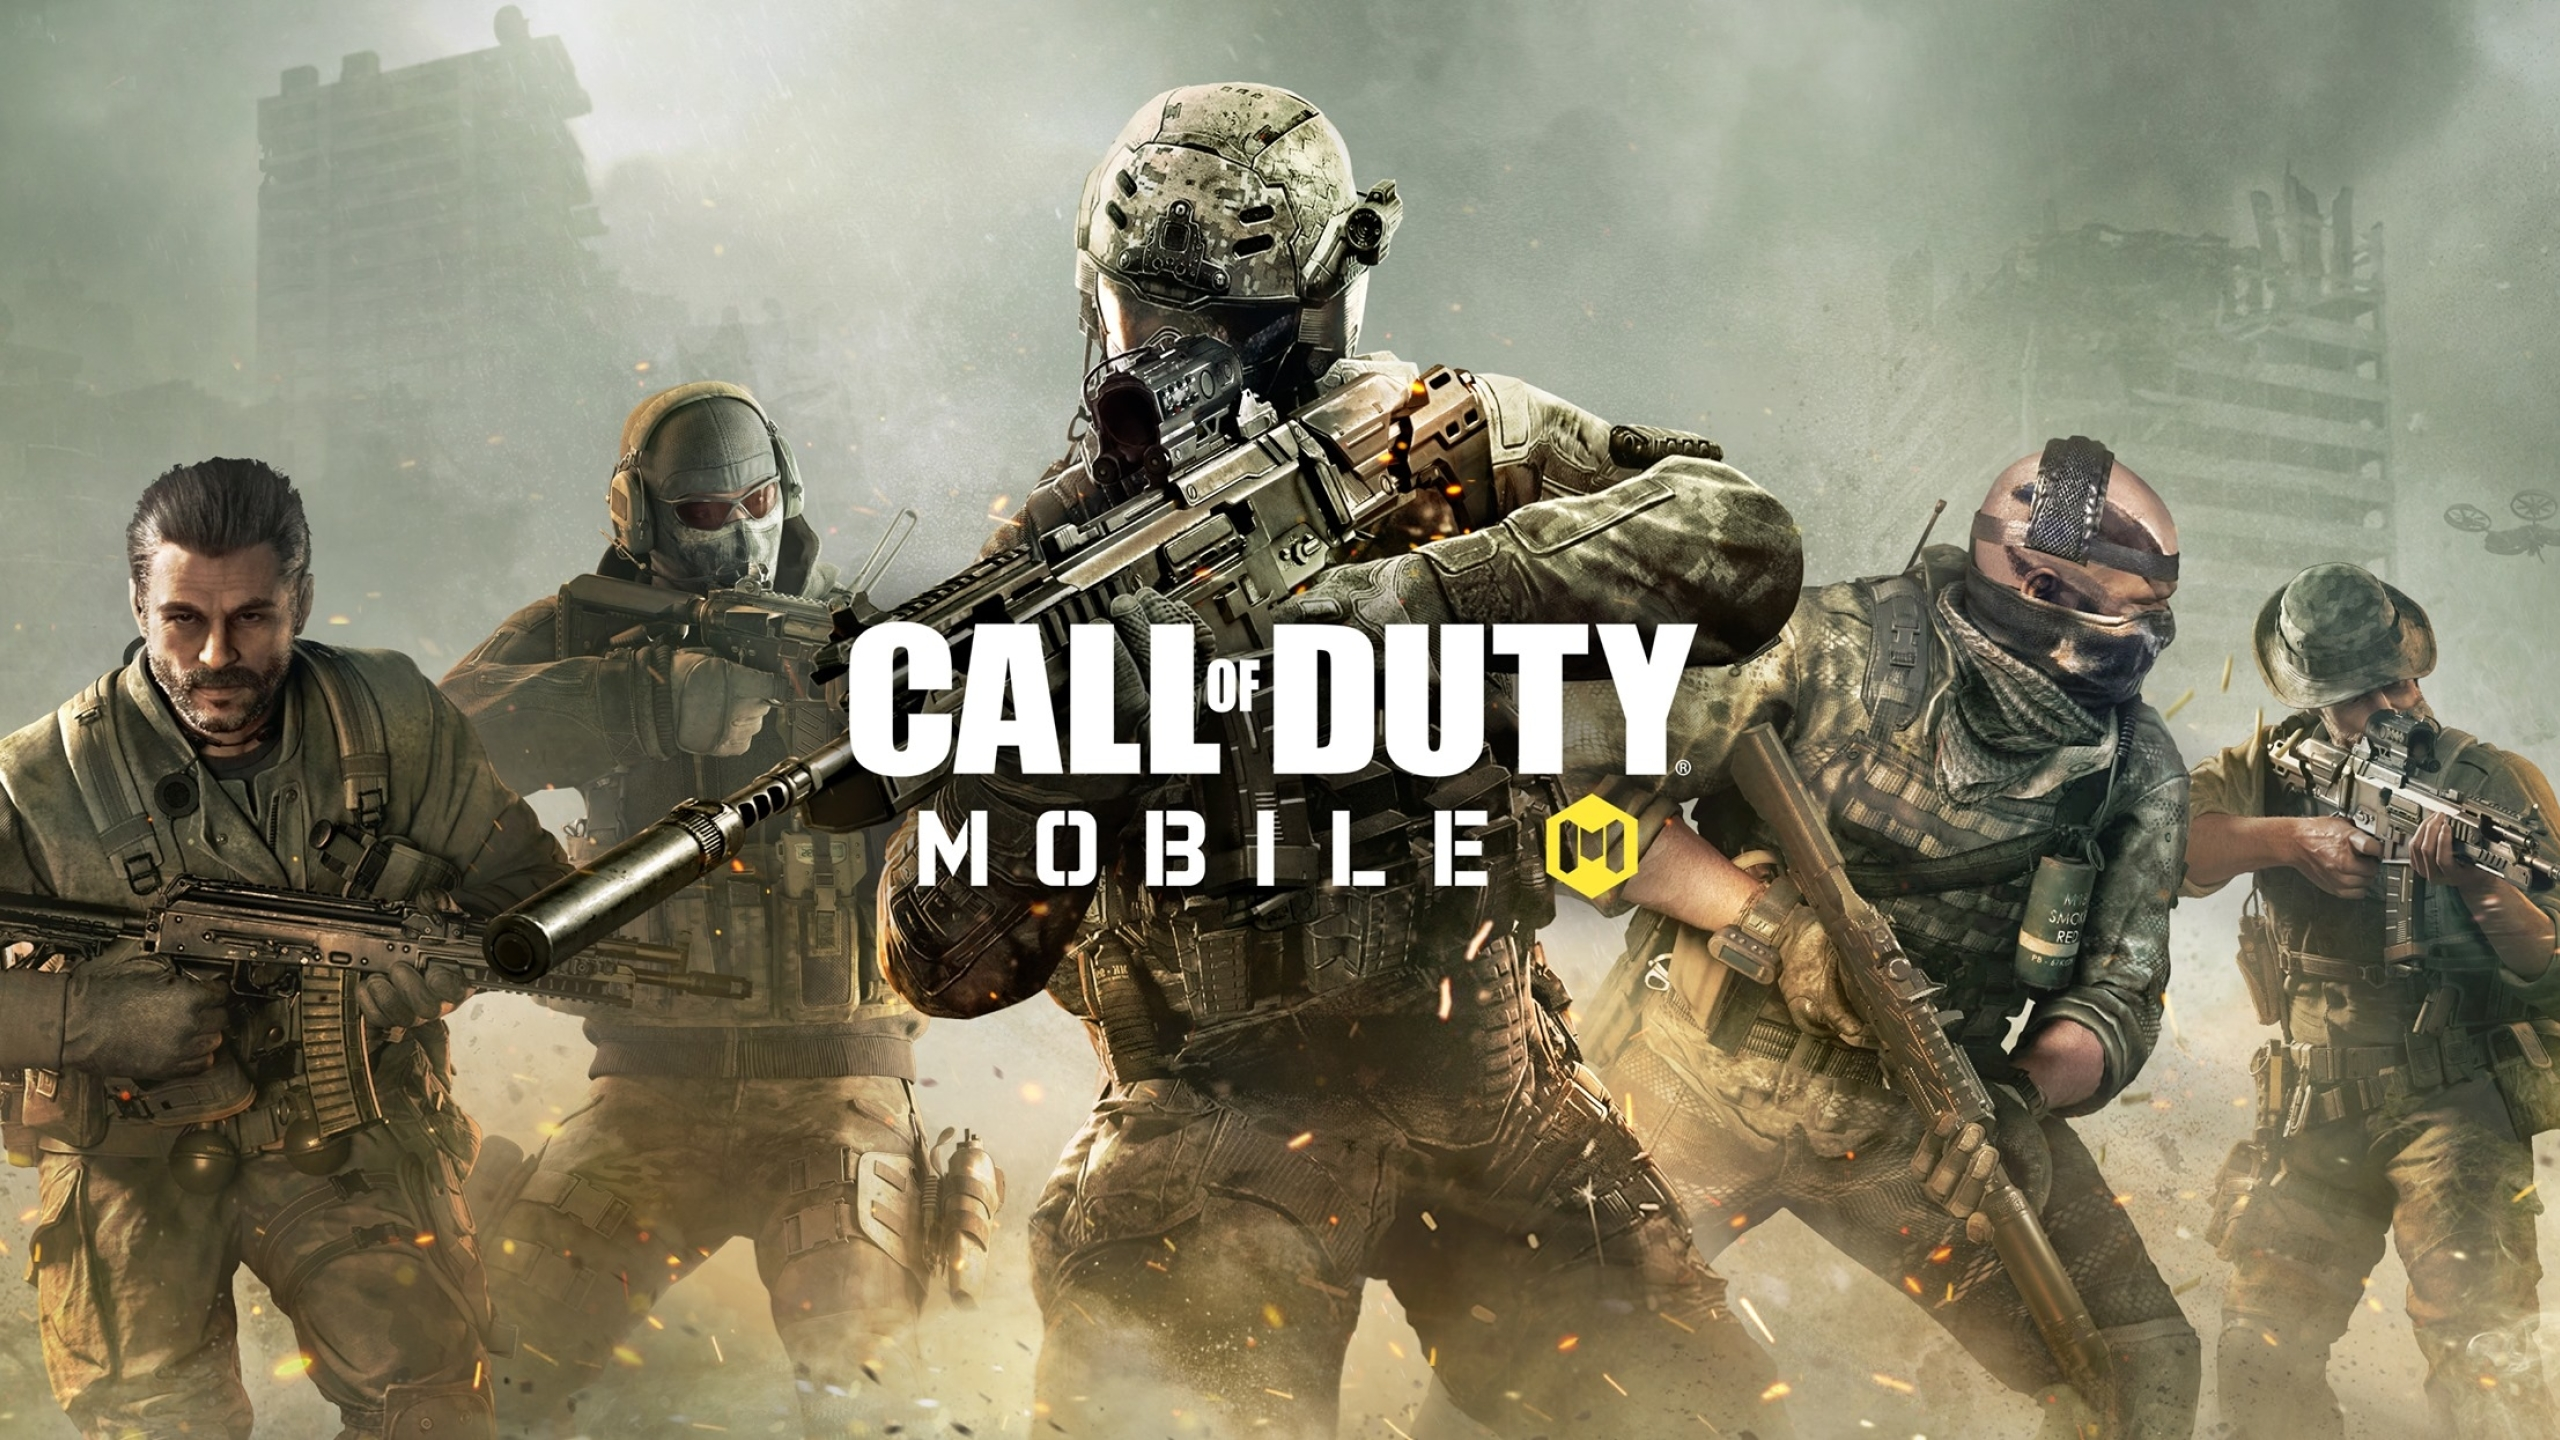 2560x1440 Call Of Duty Mobile Game 1440P Resolution Wallpaper HD 2560x1440